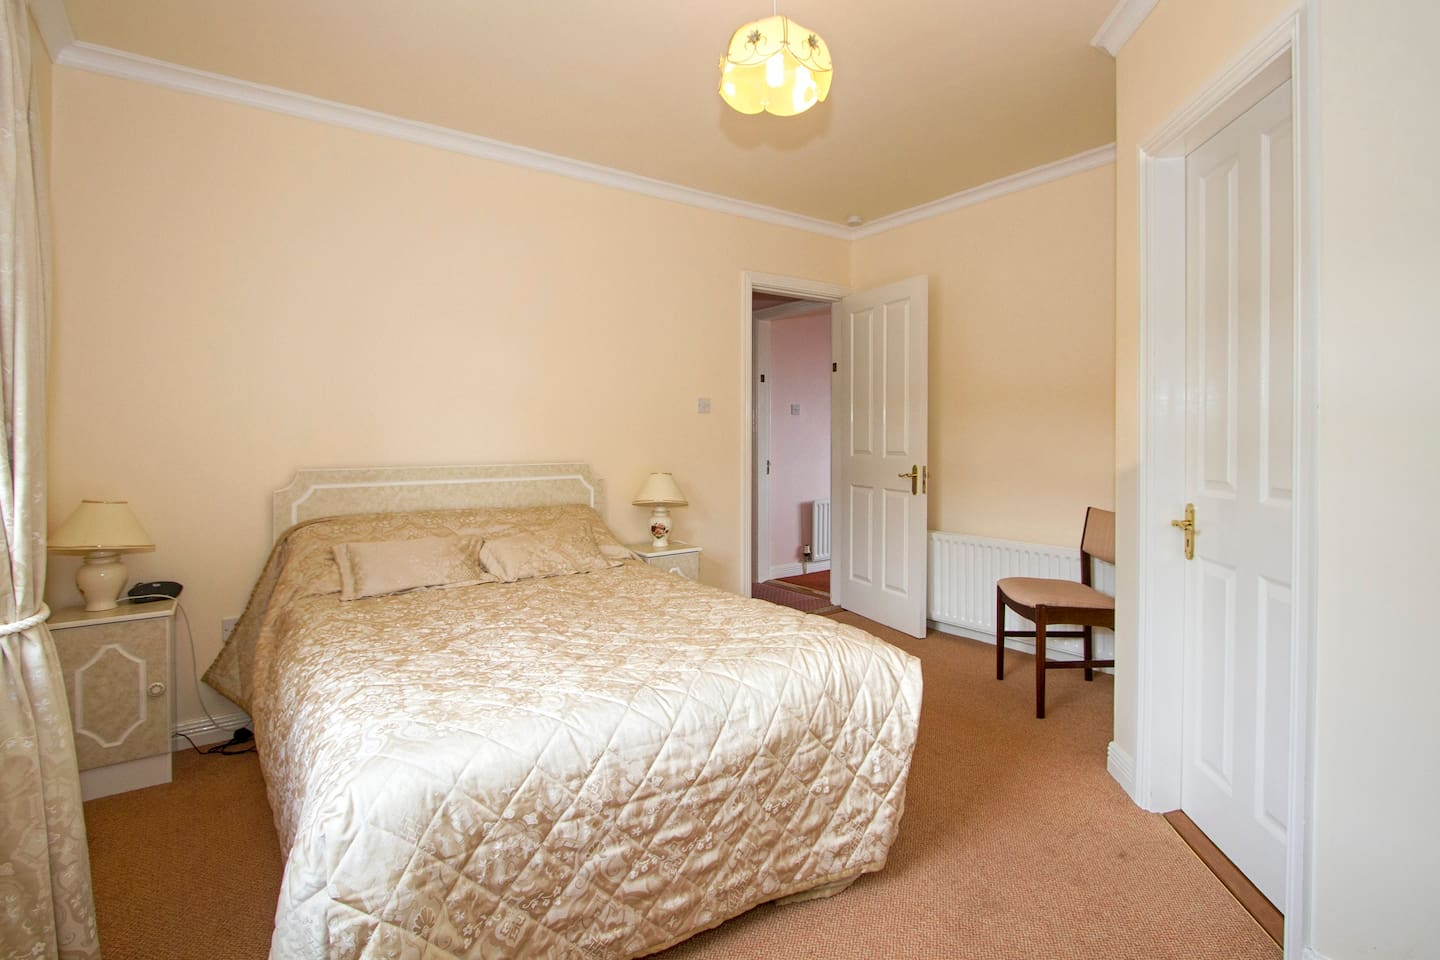 Large double bed room with en-suite for 2 adults.